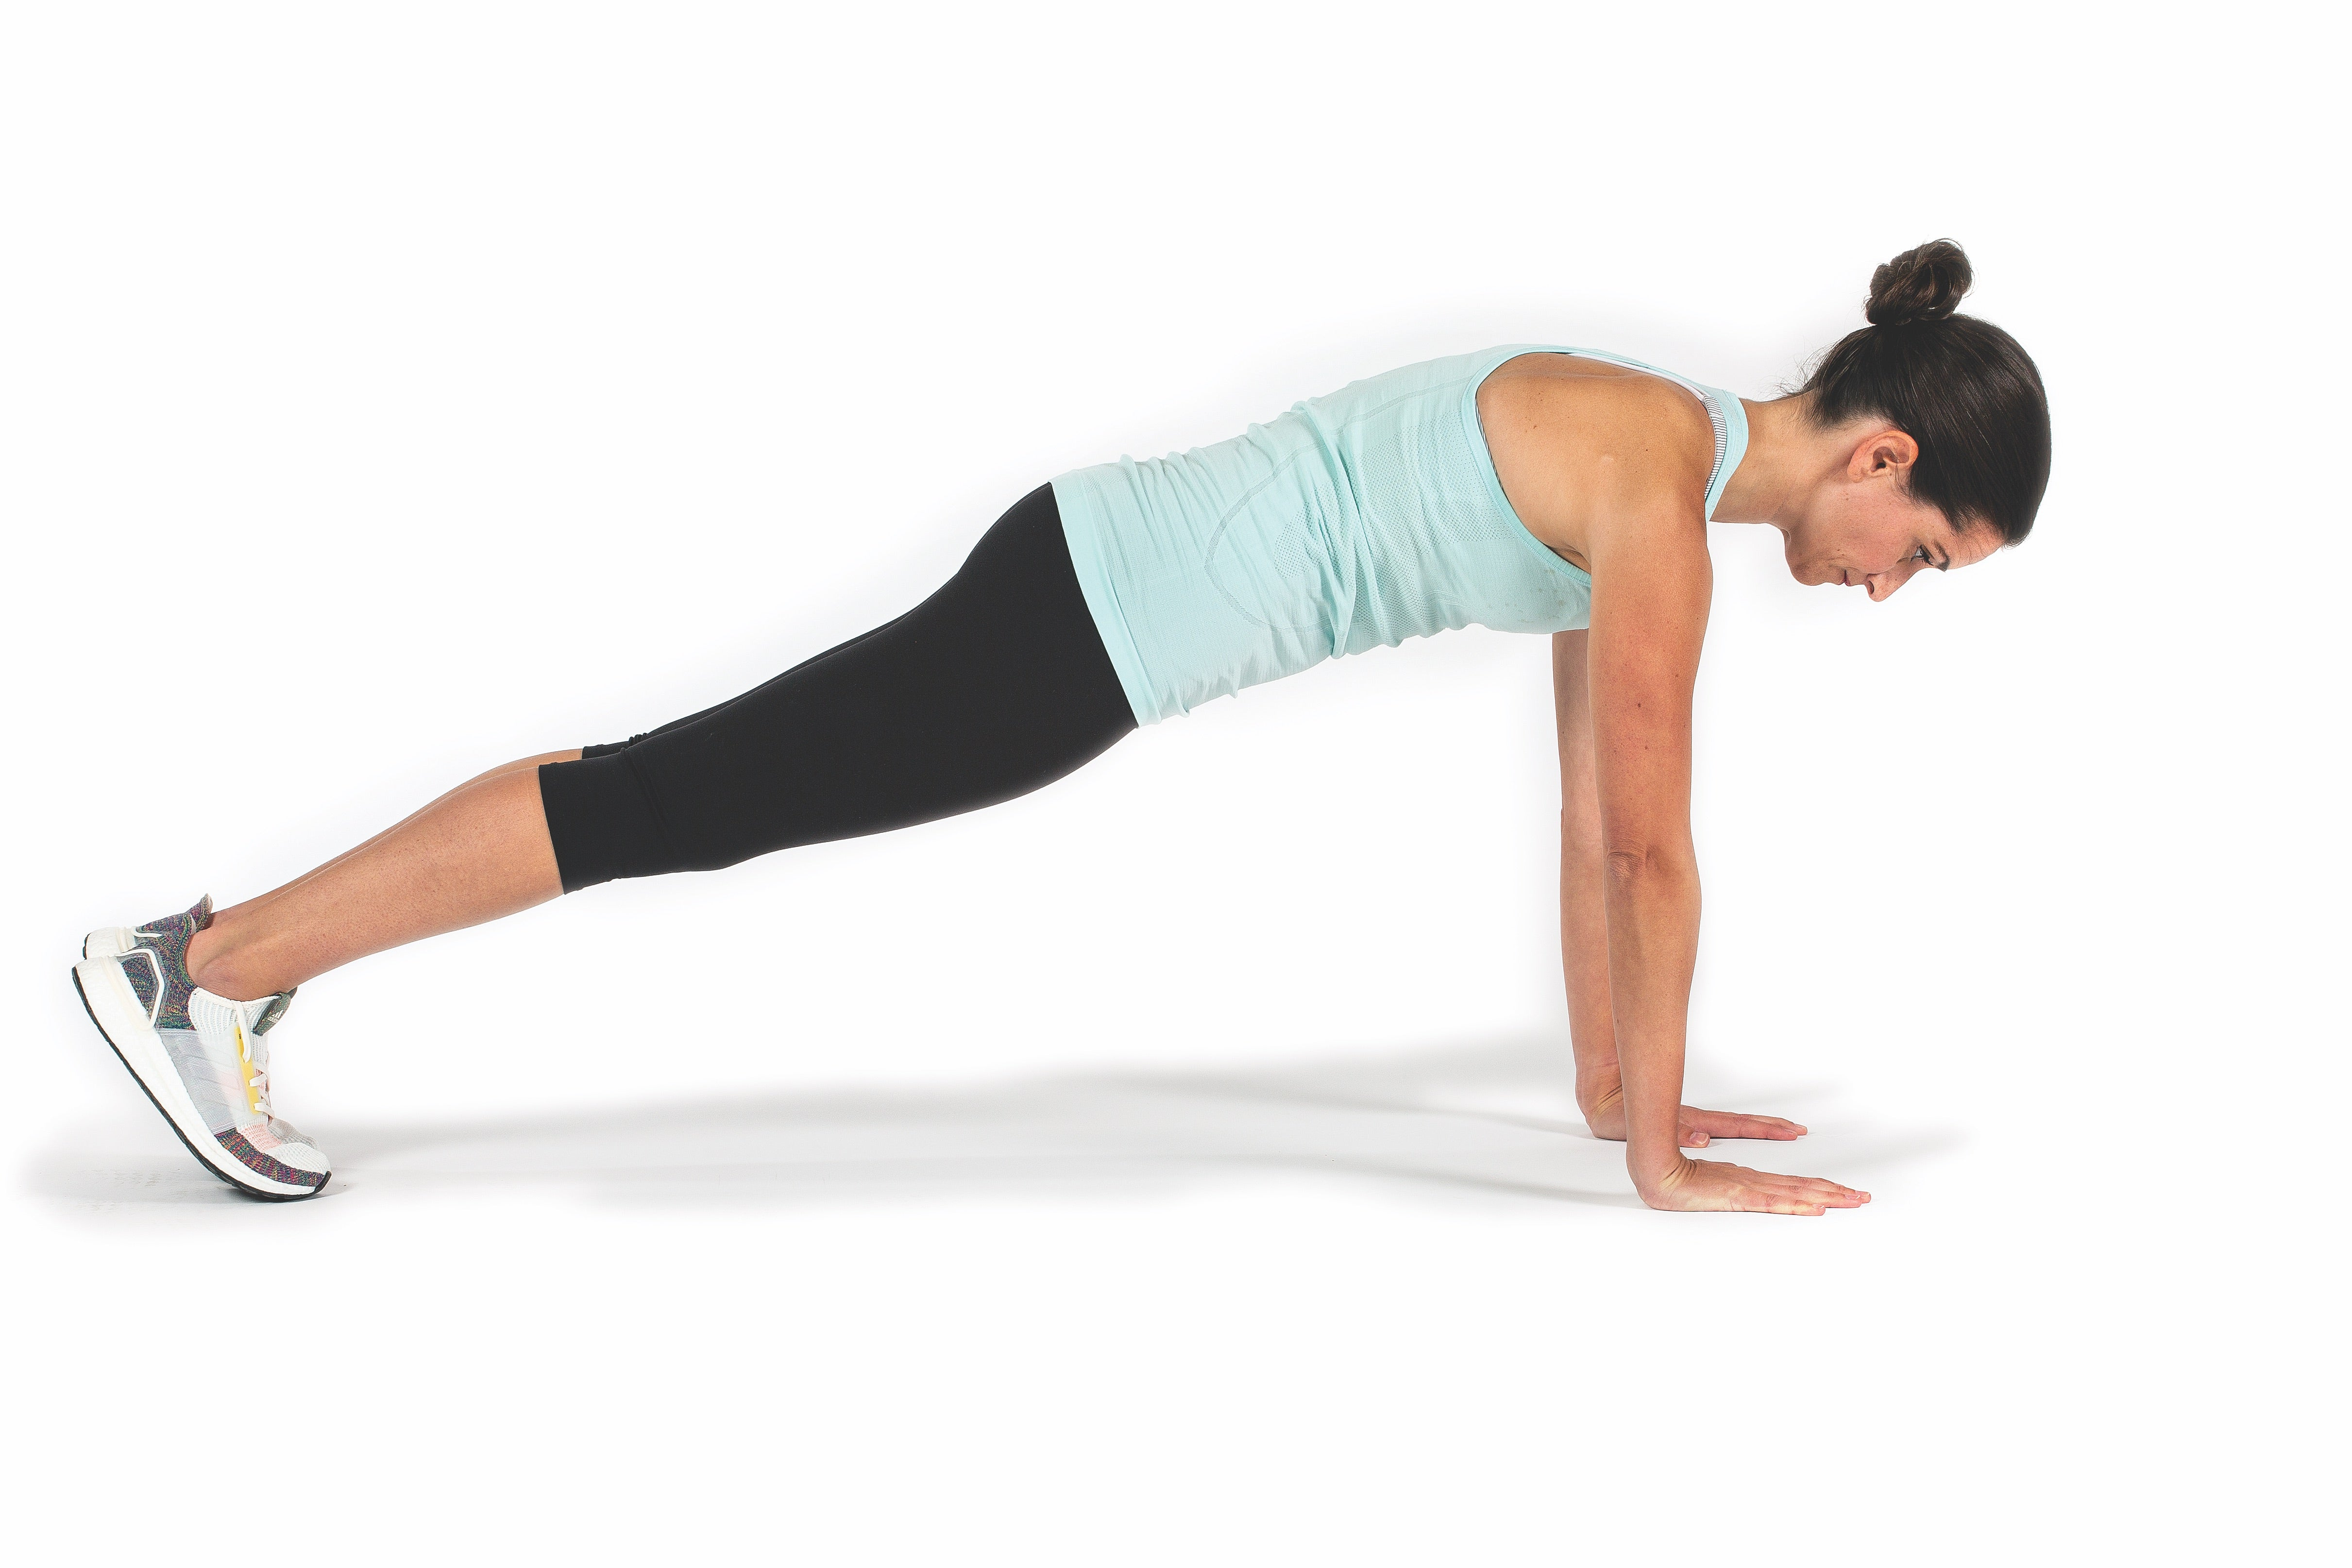 extended-plank-position-one